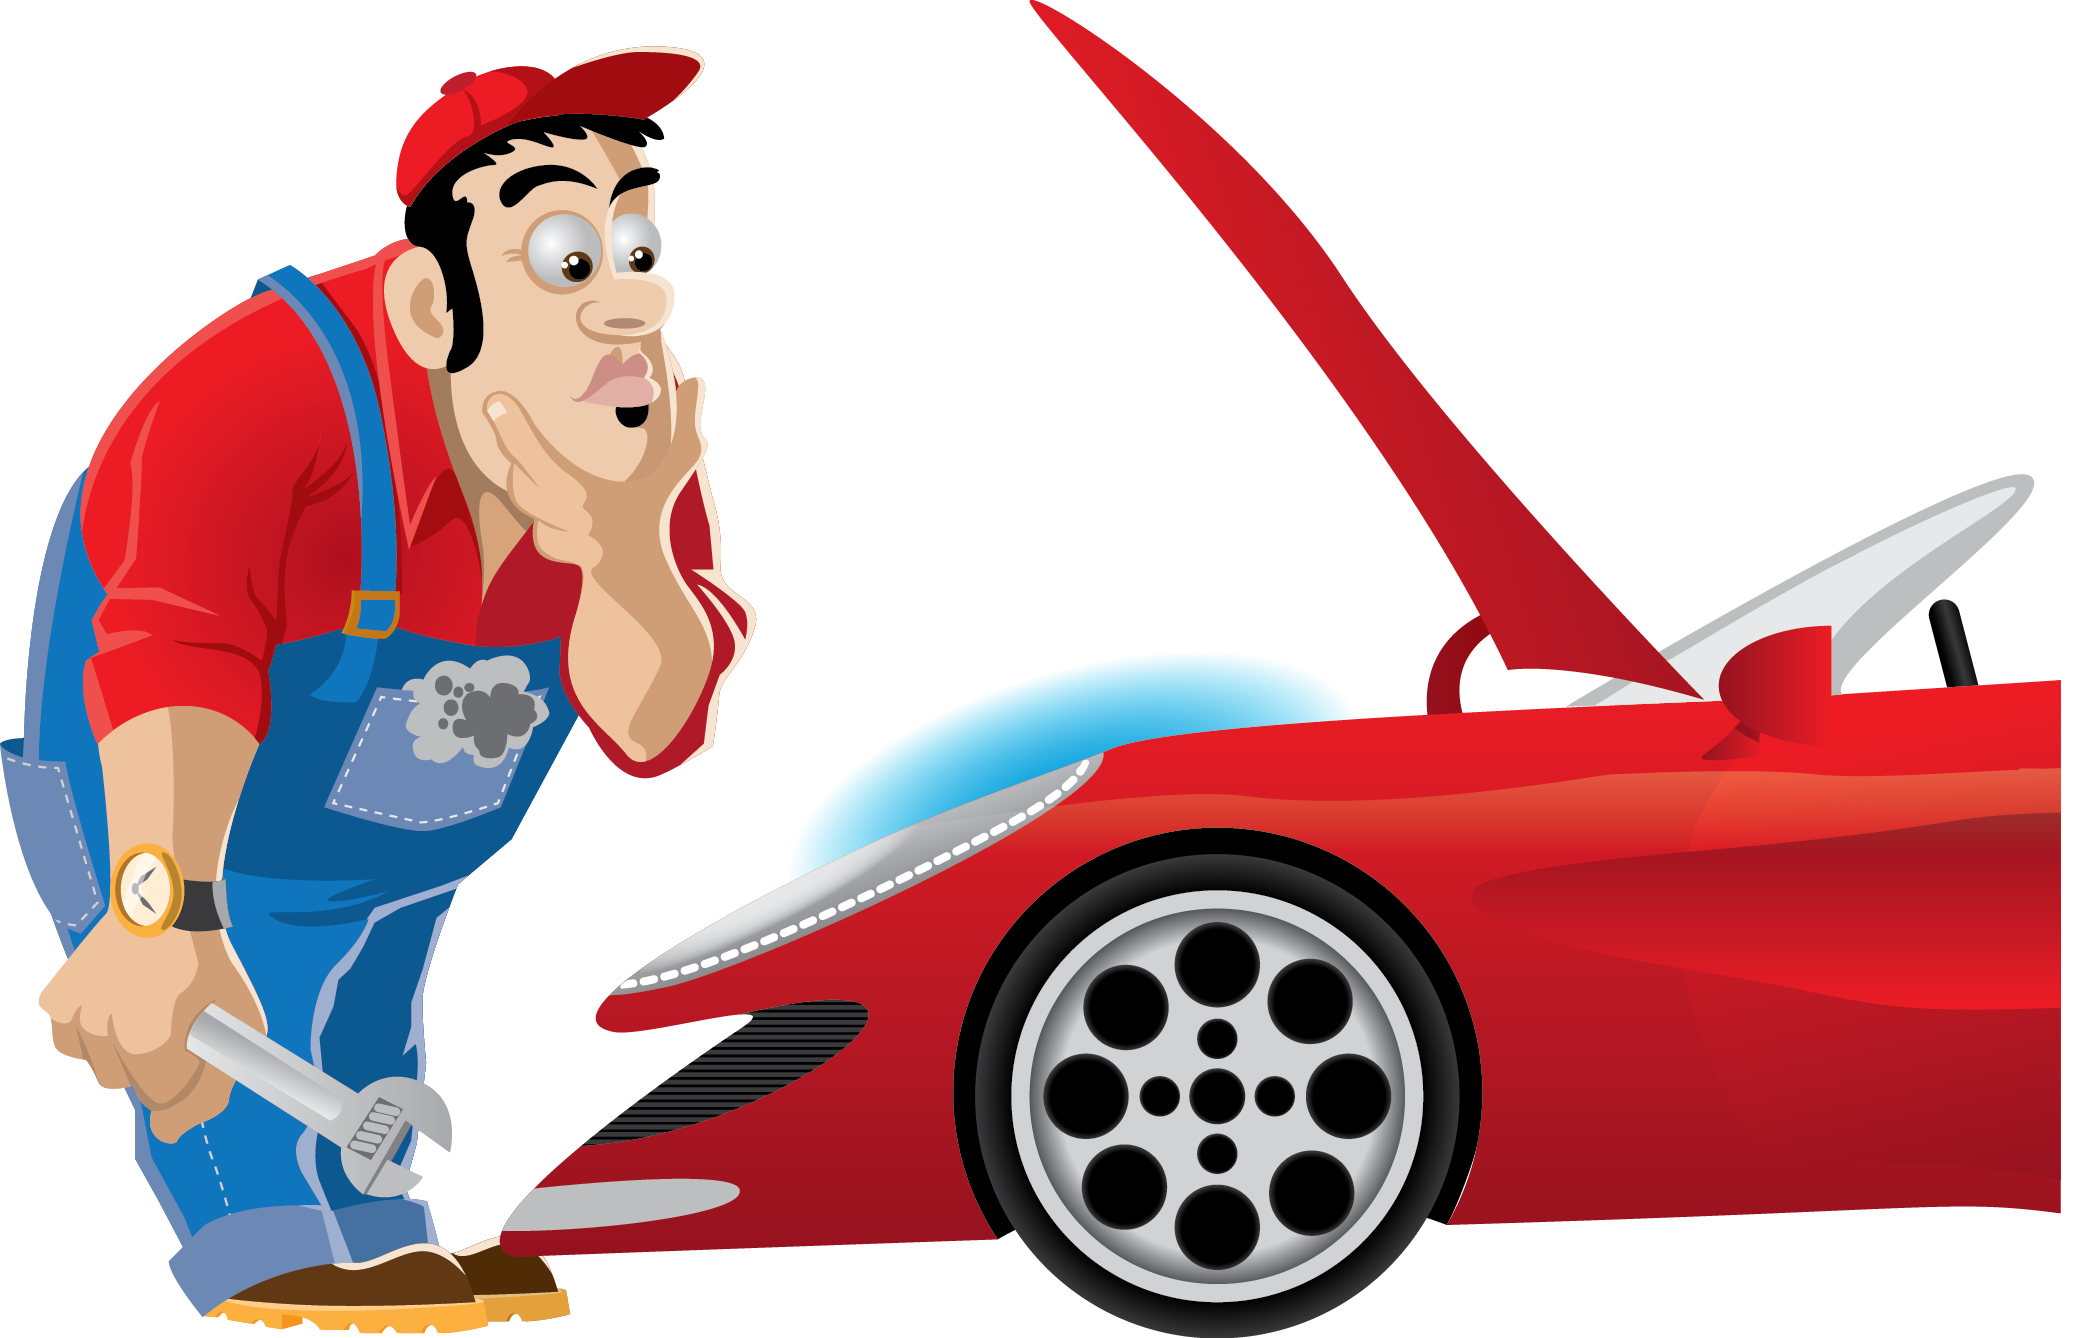 Mechanic working on car clipart png library Hocus Pocus, give me fuel to focus! A story for old and young. — Steemit png library